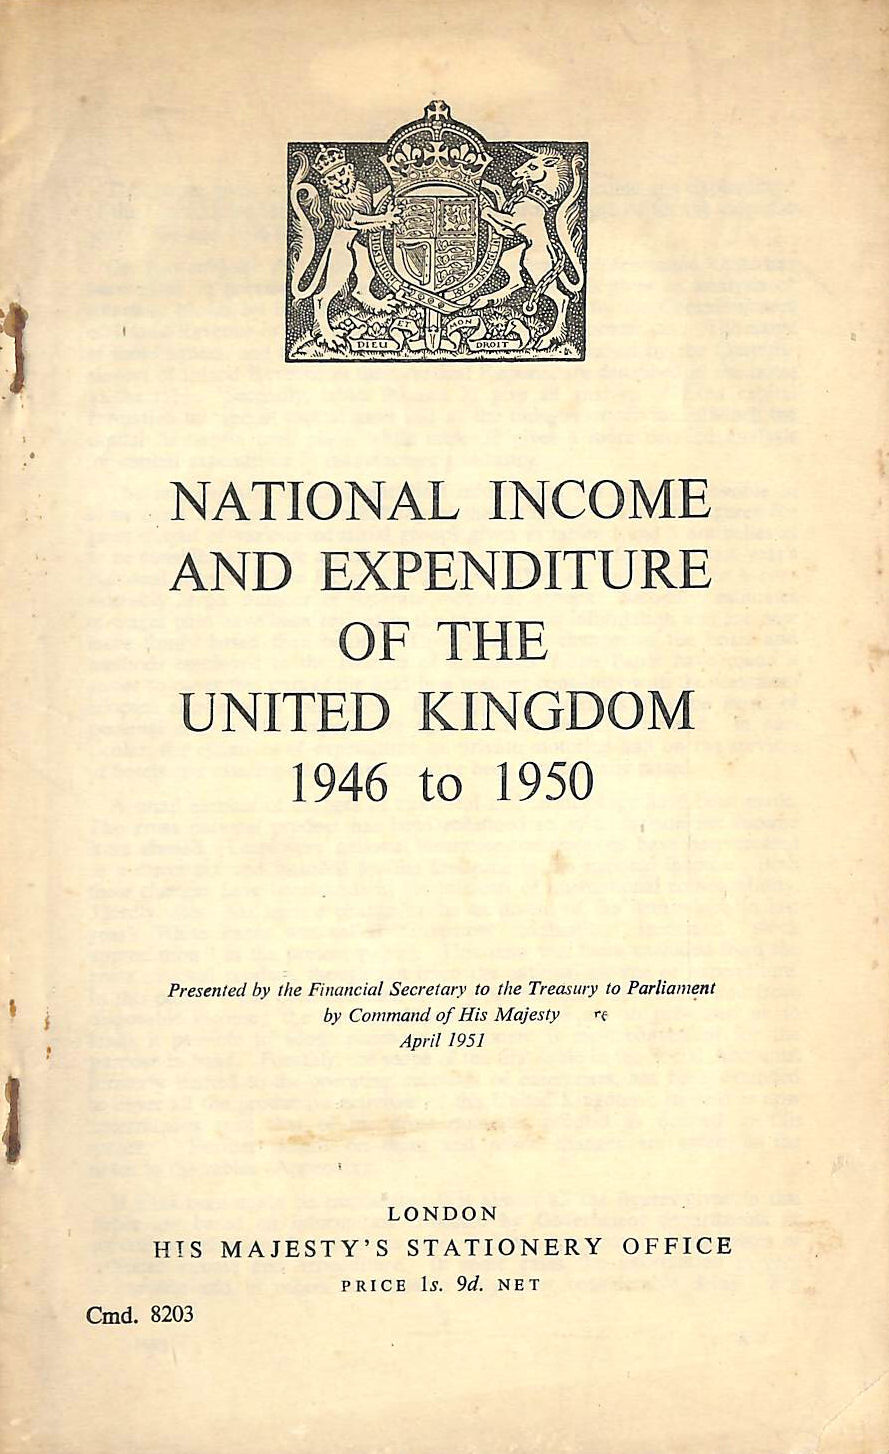 Image for National Income and Expenditure of the United Kingdom 1946 to 1950.